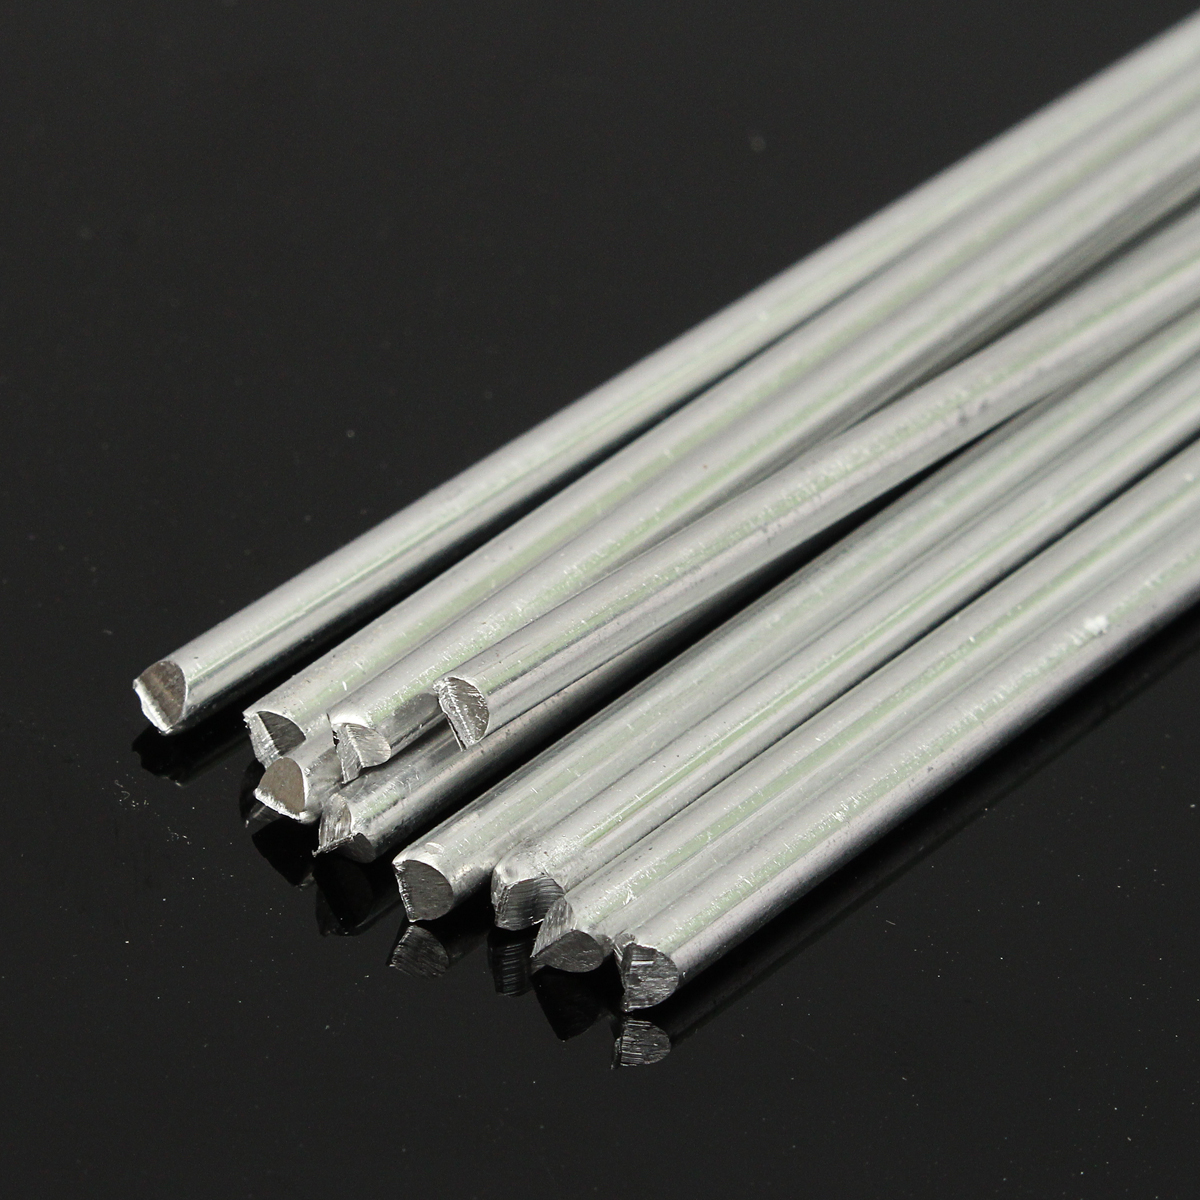 10Pcs Low Temperature Alumaloy Aluminum Repair Rods 3.2mmx230mm Welding Machine Accessories